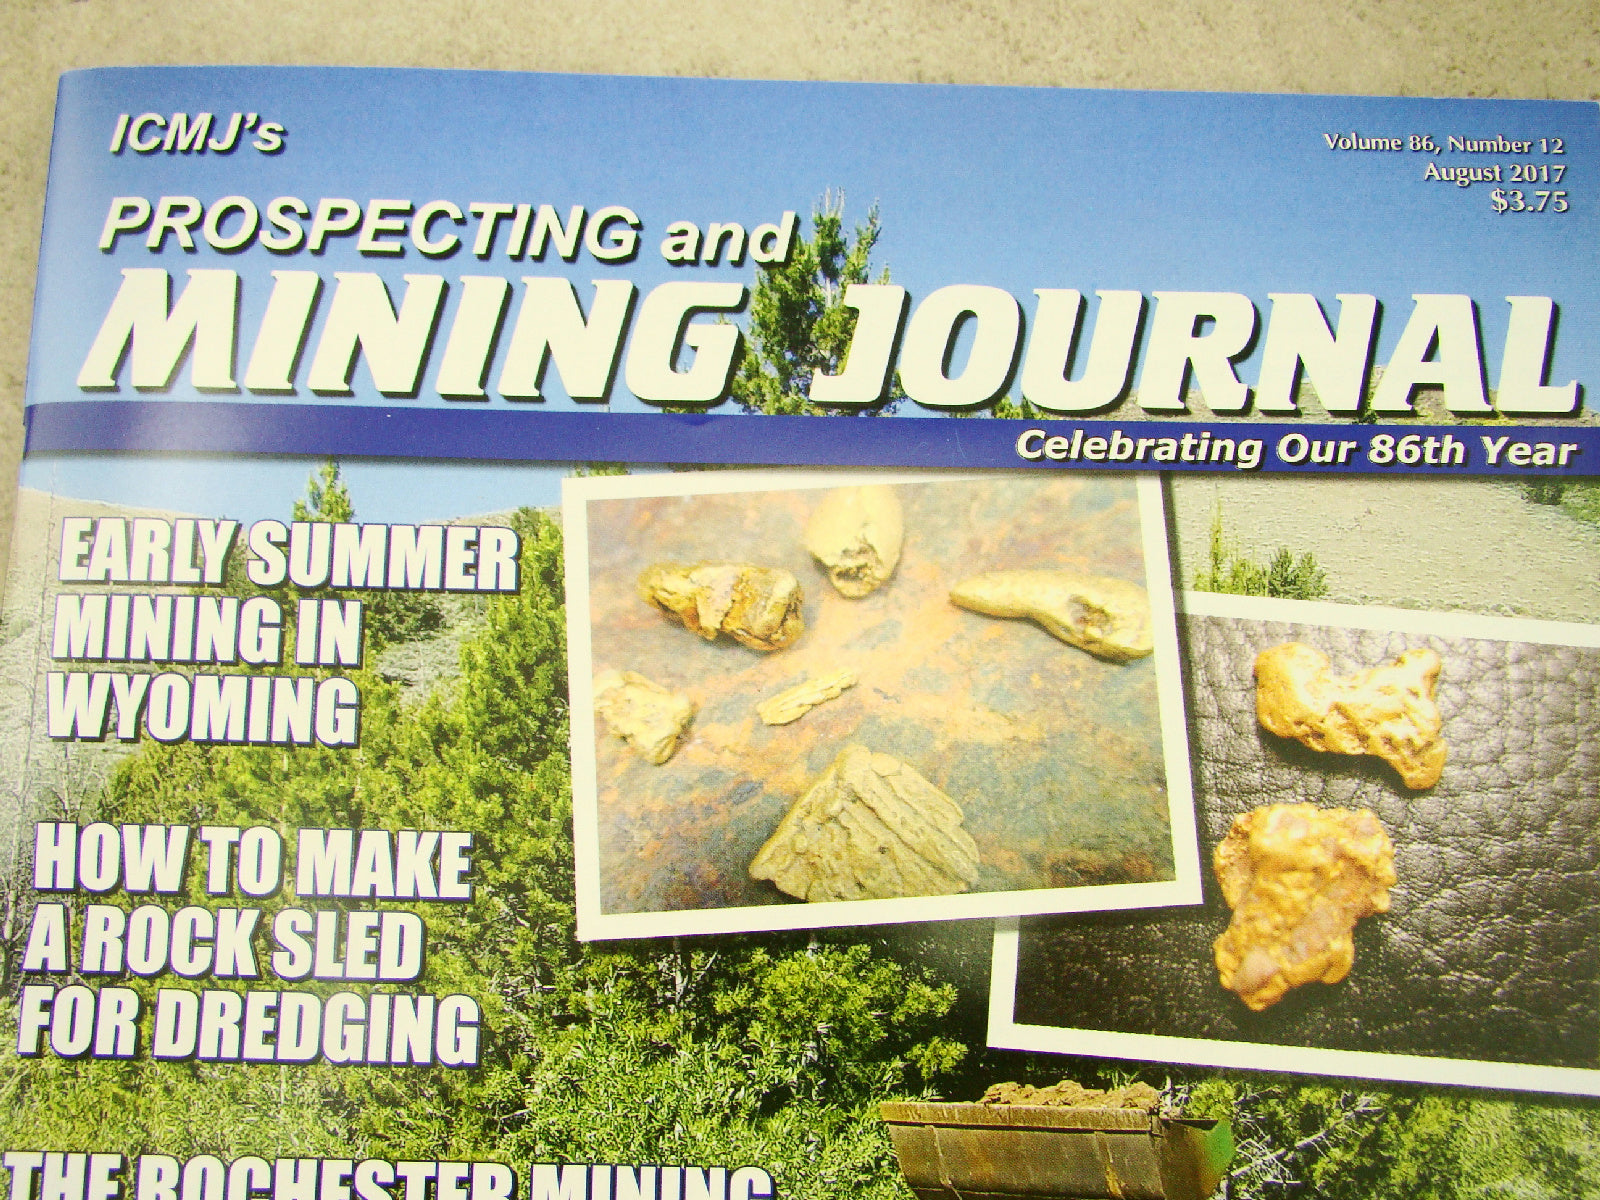 ICMJ's Prospecting & Mining Journal Magazine August 2017, GOLD!!! DIY Rock Sled